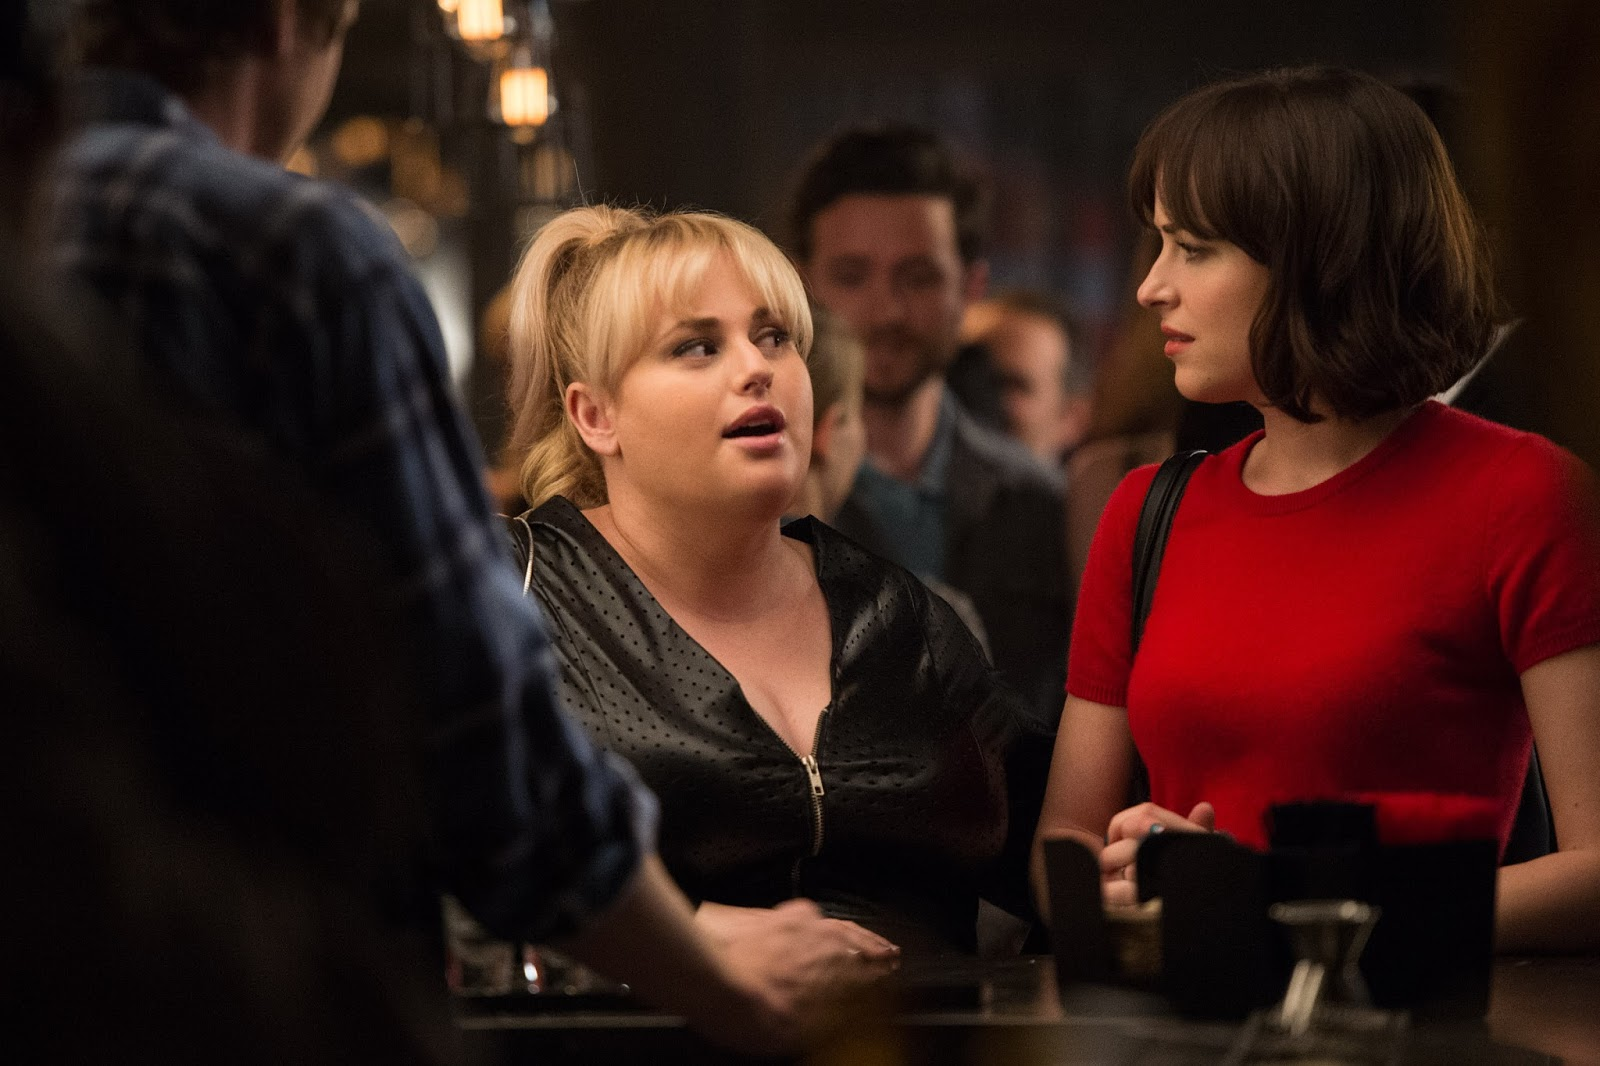 Rebel wilson the party animal in how to be single the showbook be singlehow to get drinks for free in a bar where to hook up with someone at work when to text back the guy you slept with the night before ccuart Image collections